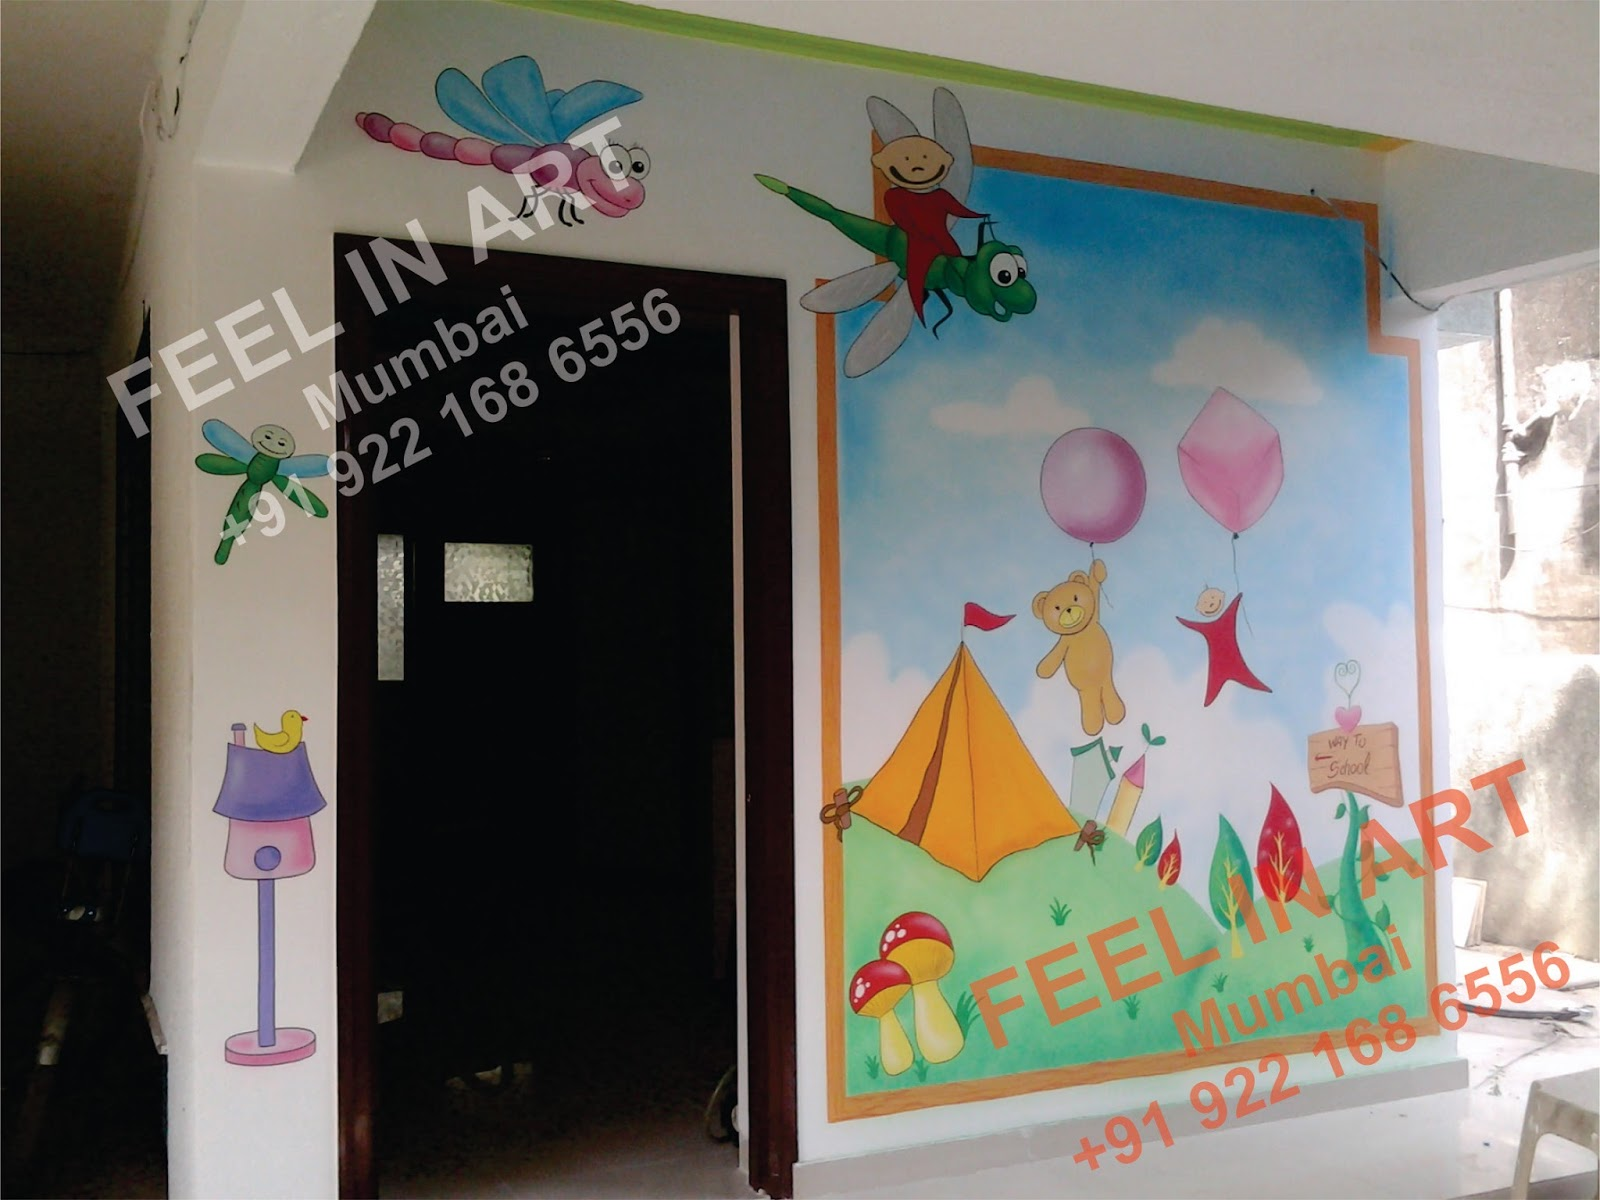 Play school wall painting day care classroom wall murals for Classroom wall mural